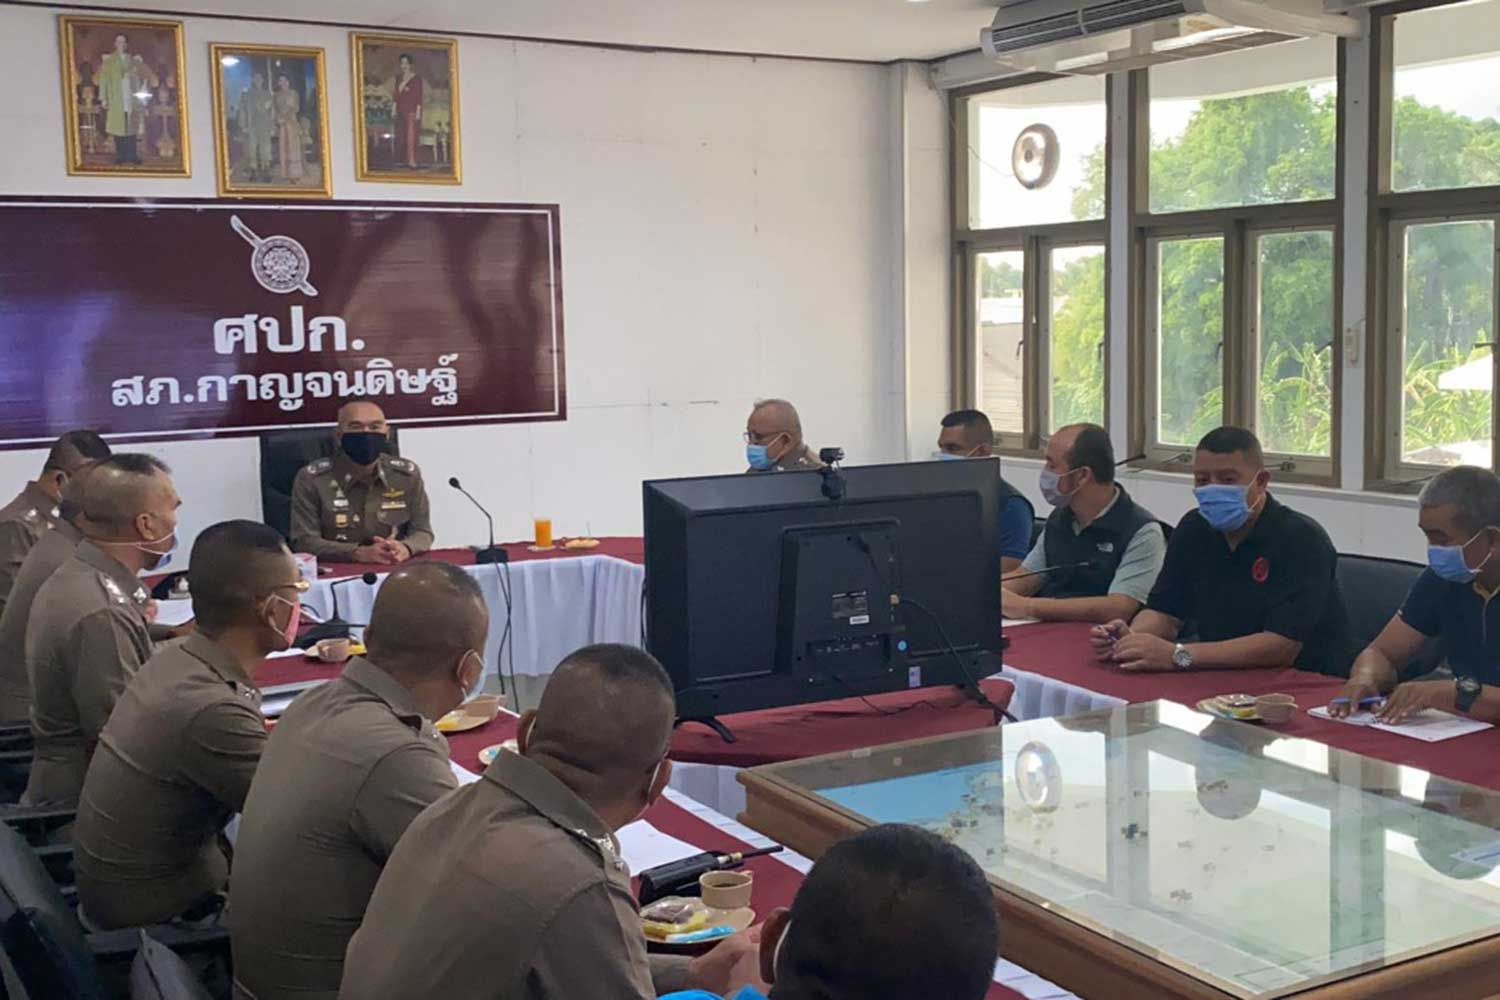 Pol Maj Gen Thakoon Natepukkana, chief of Surat Thani police, chairs a meeting on Friday with investigators handling the case of alleged extortion by three police officers. (Photo: Supapong Chaolan)